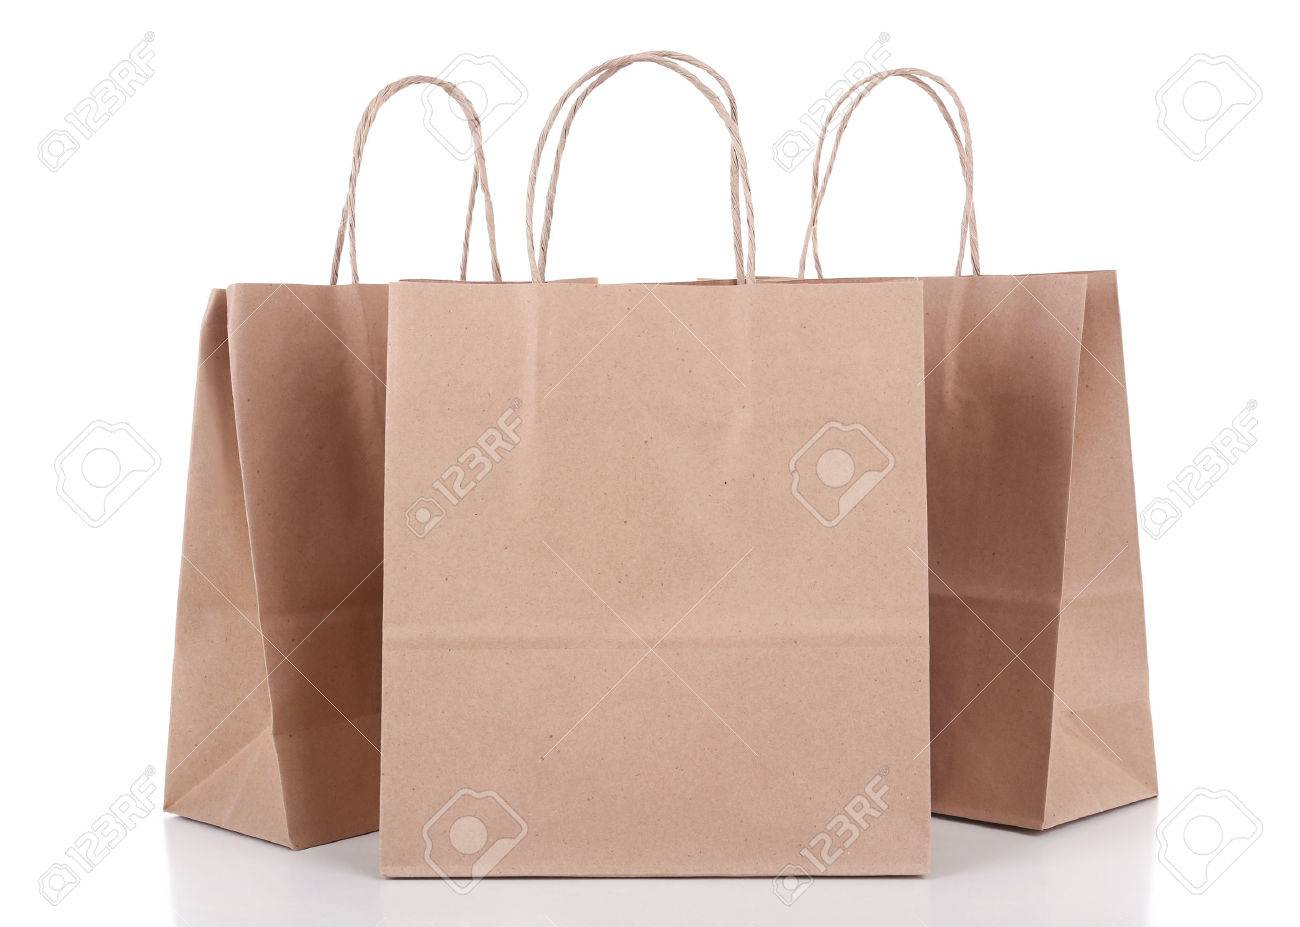 Paper shopping bags isolated on white - 50669185